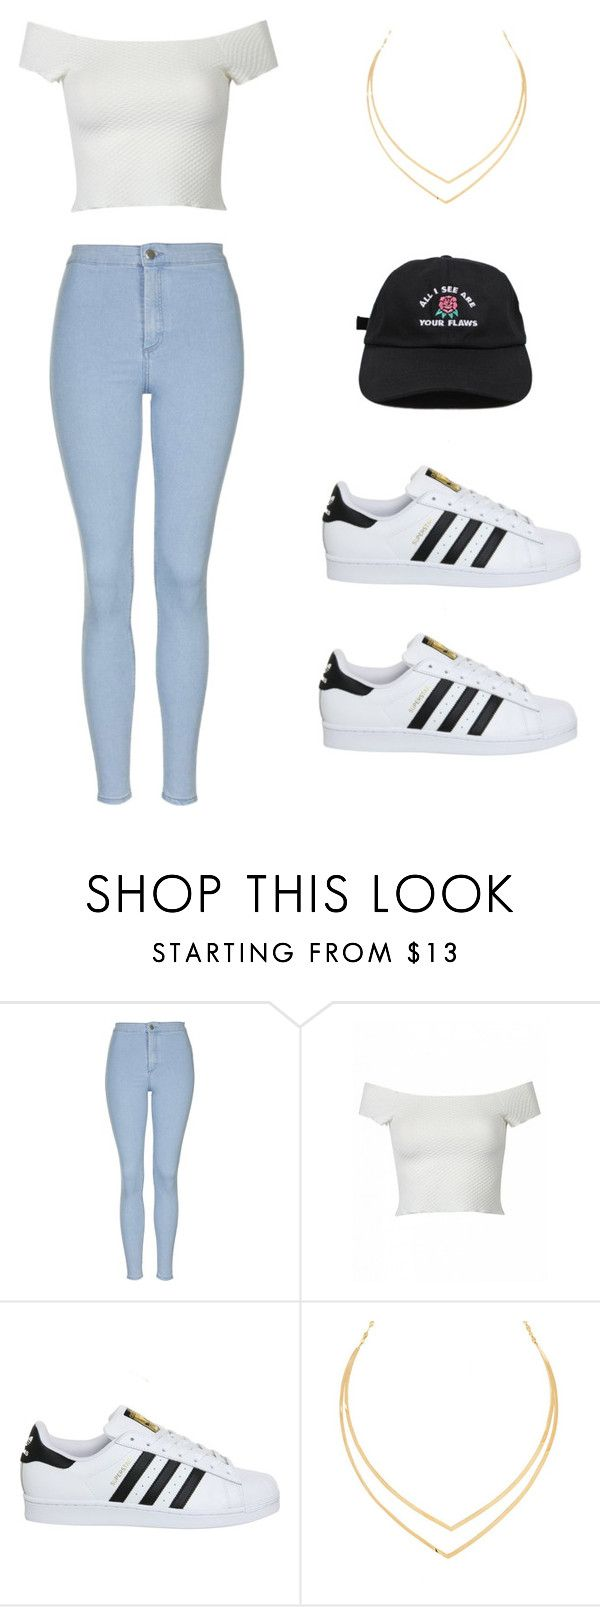 """Untitled #193"" by meliaclimons on Polyvore featuring Topshop, adidas and Lana"